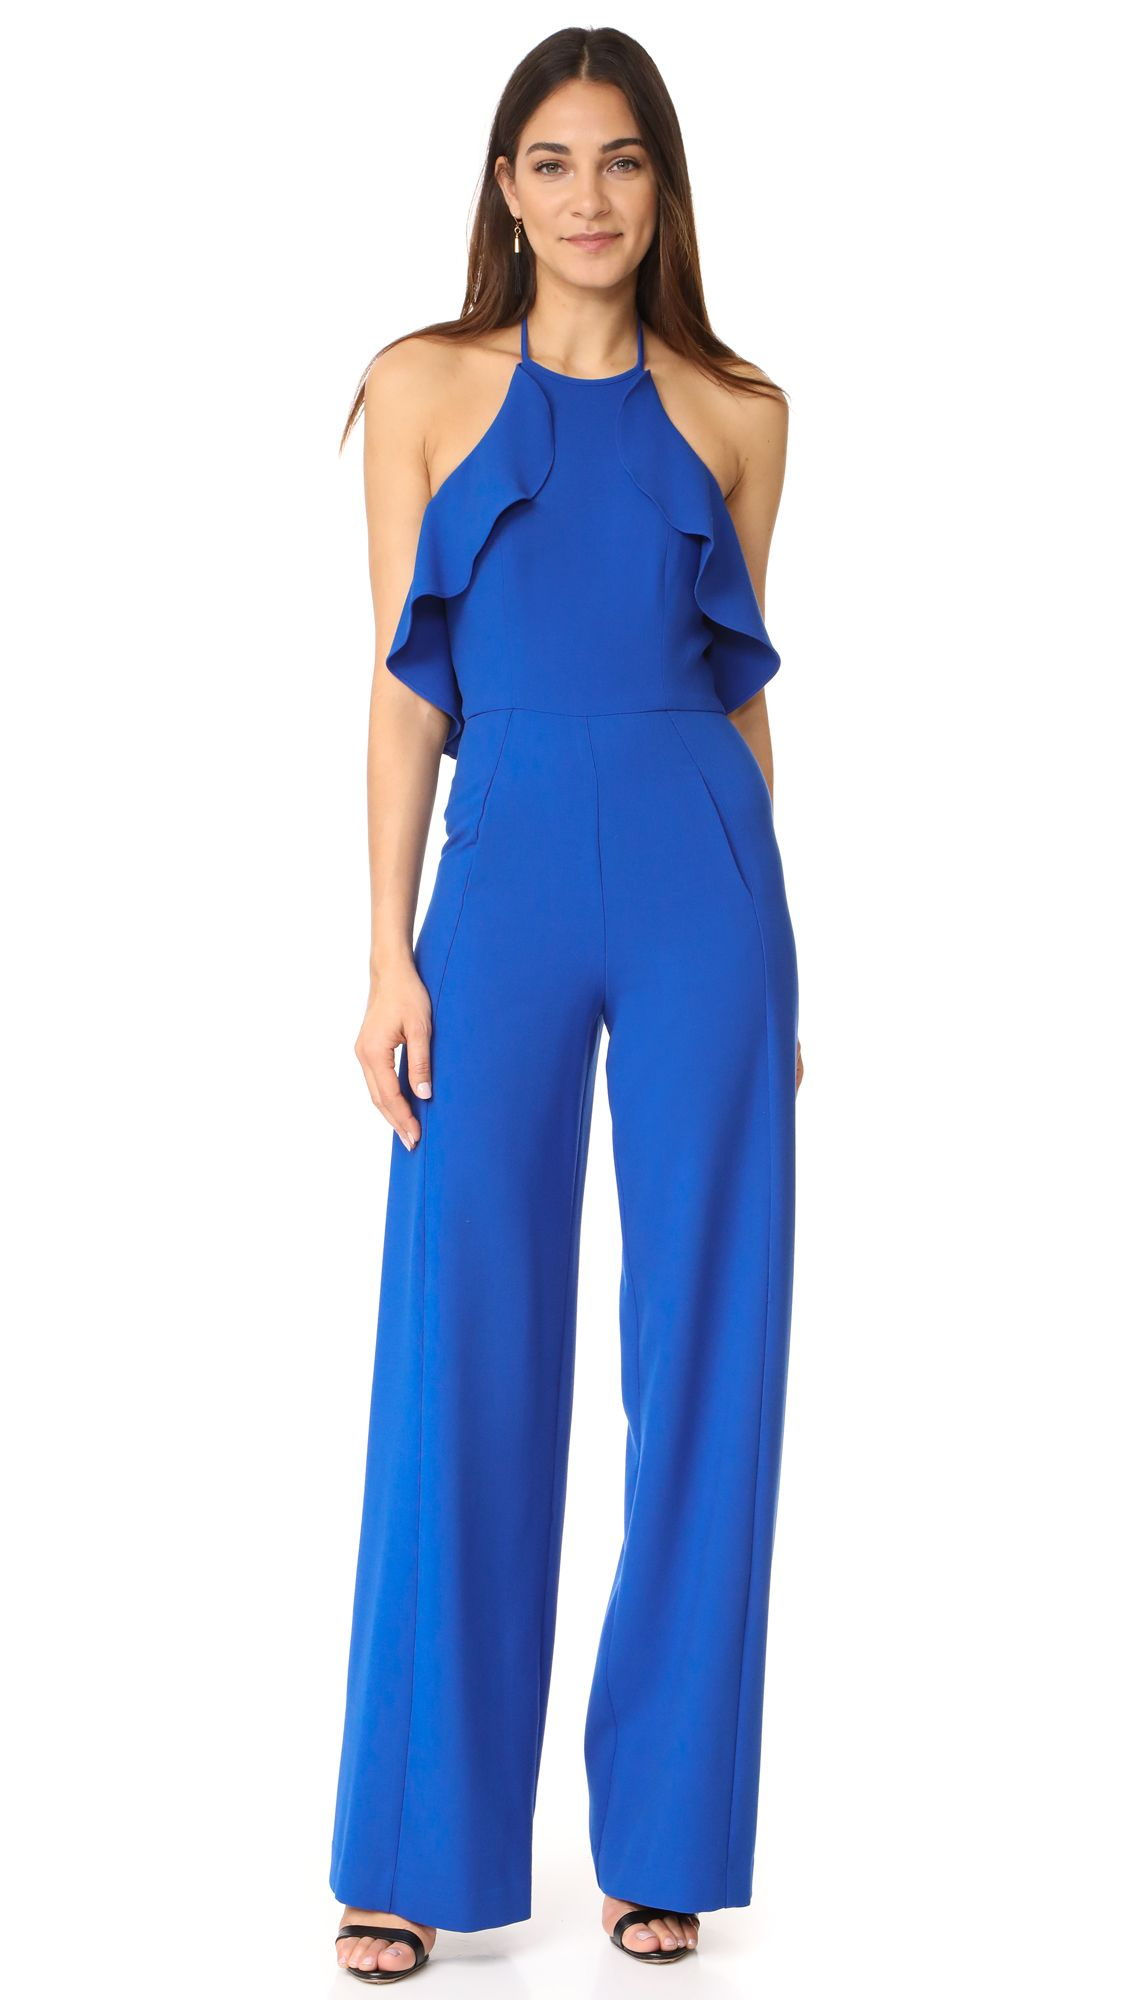 15 Jumpsuits You Can Absolutely Wear as a Wedding Guest  9f088f1e7